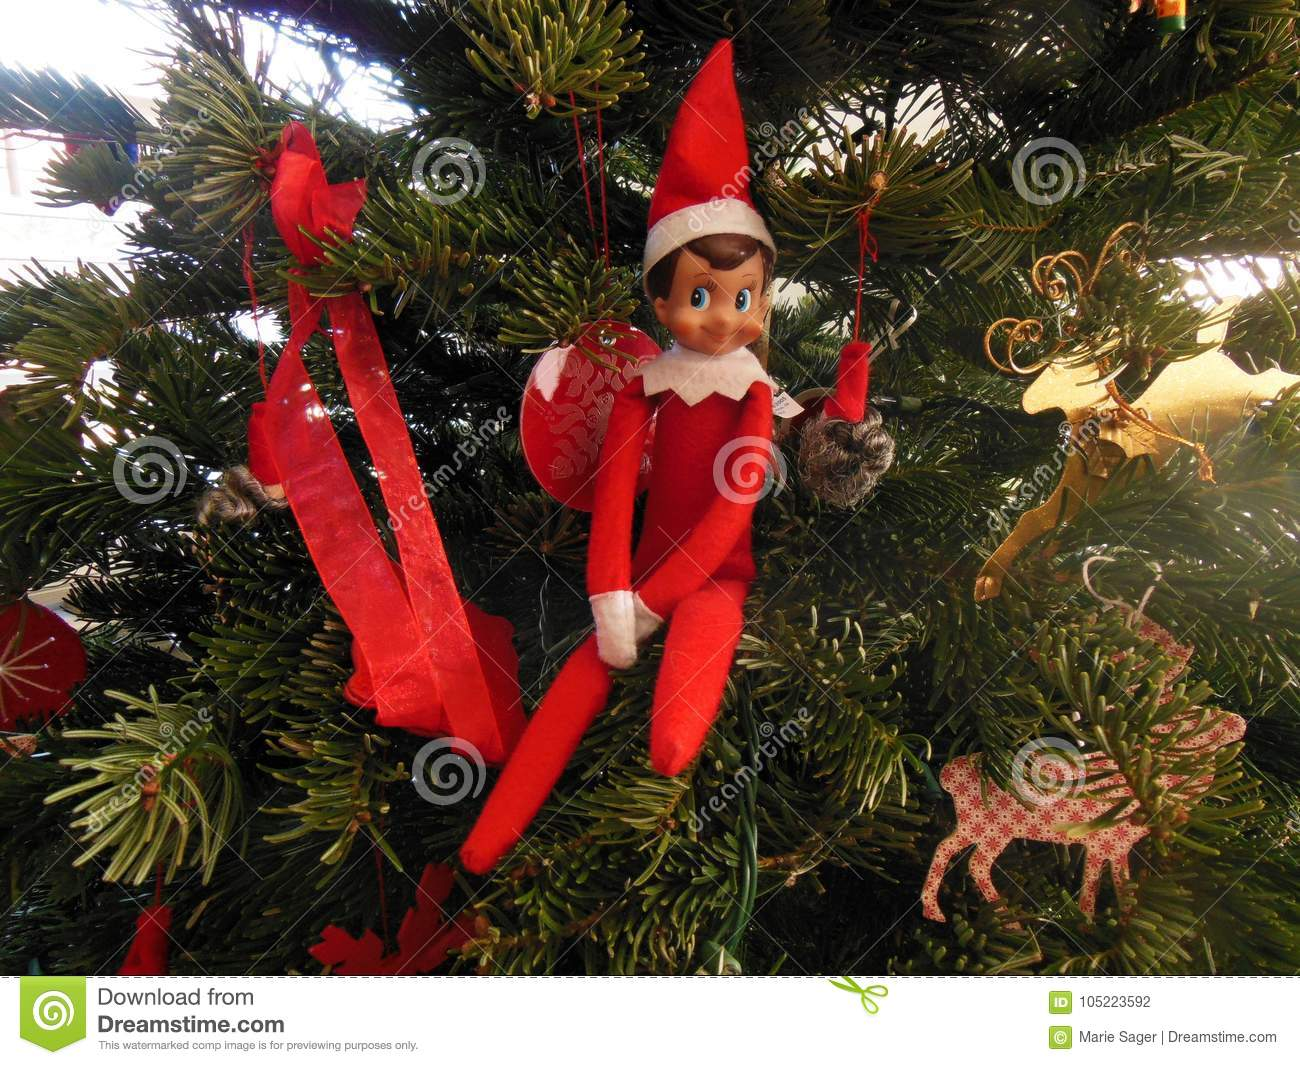 Elf Stock Photos Royalty Free Stock Images